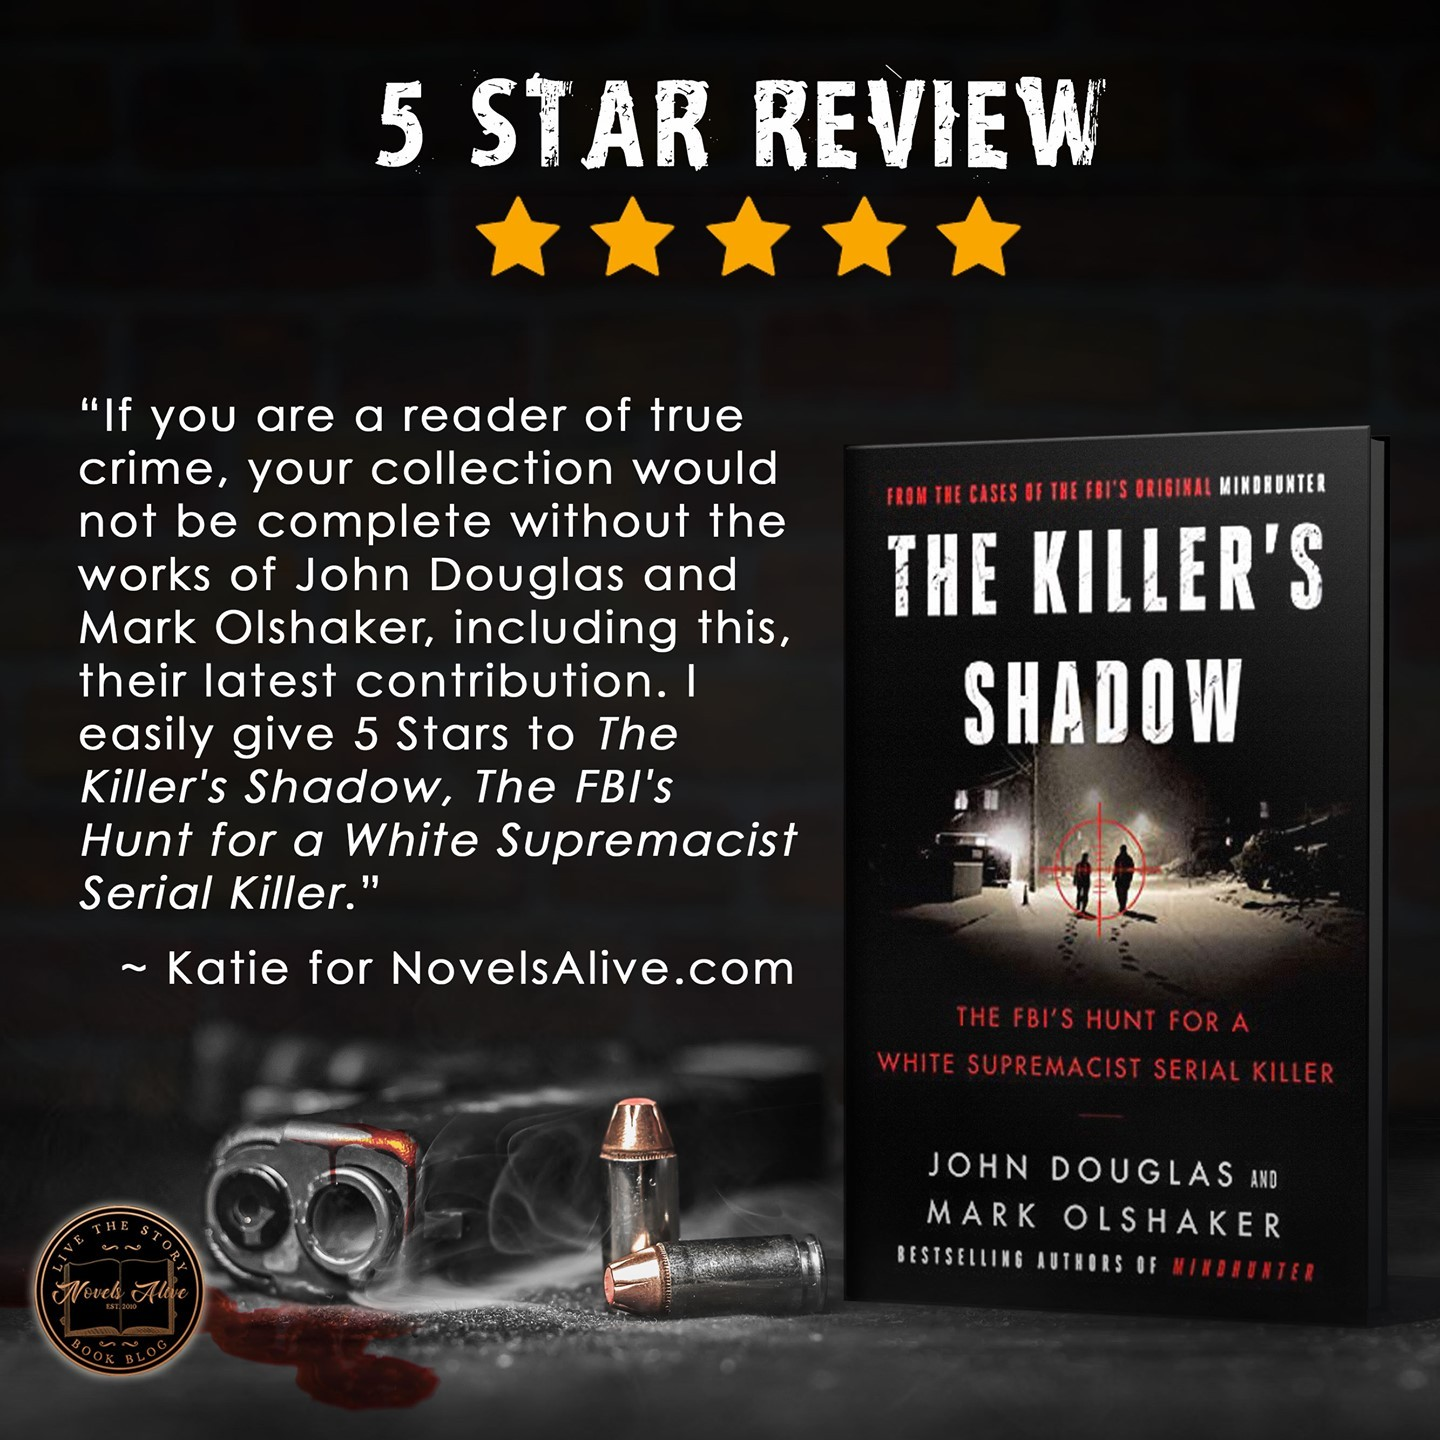 The Killer's Shadow - Review